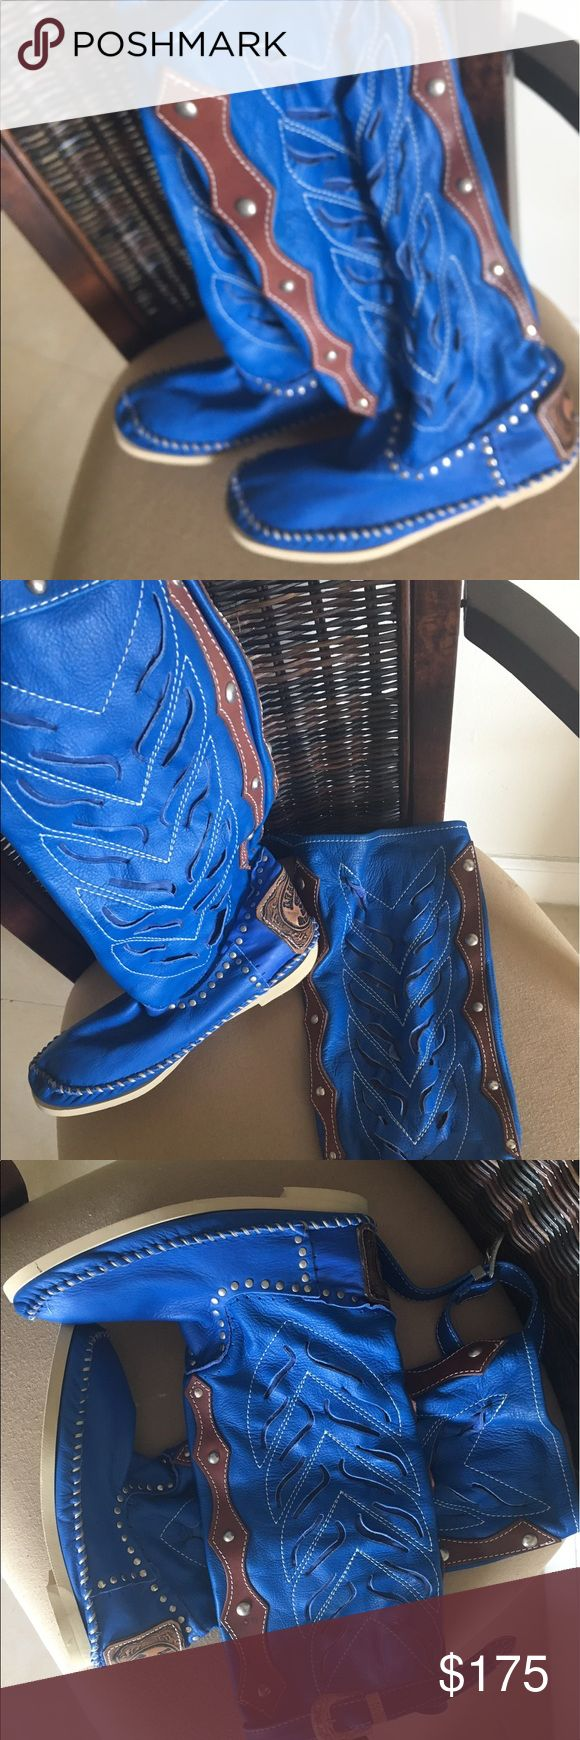 New Hector Riccione Leather made in Italy boots Brand new Hector Riccione Original Collection. Hand made in Italy. Very comfortable unique, trendy, stylish. Made with Best soft leather ! Shoes Moccasins